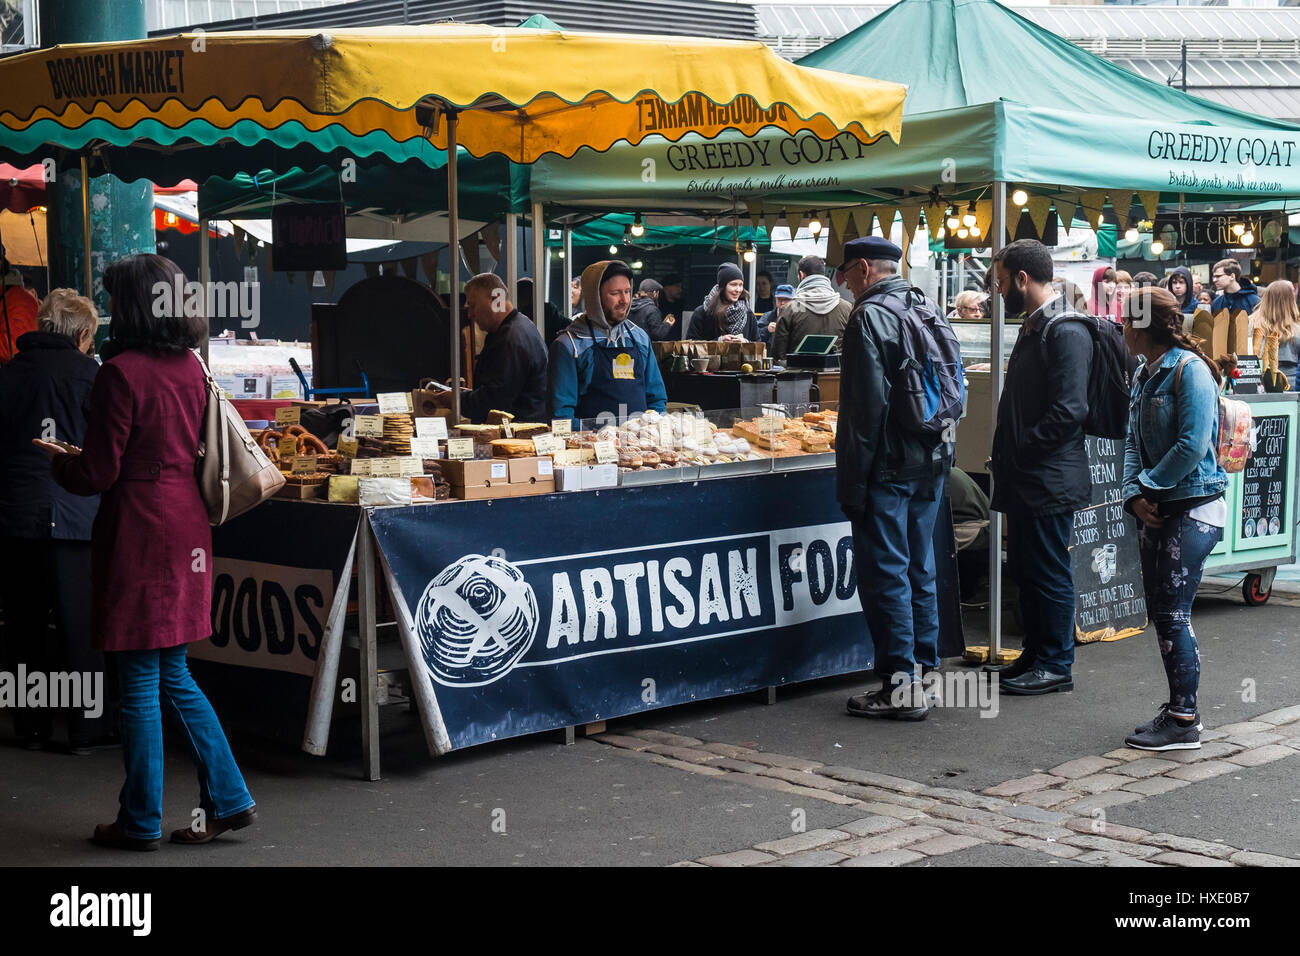 Borough Market Display Artisan Food Shoppers Stall Customers - Stock Image